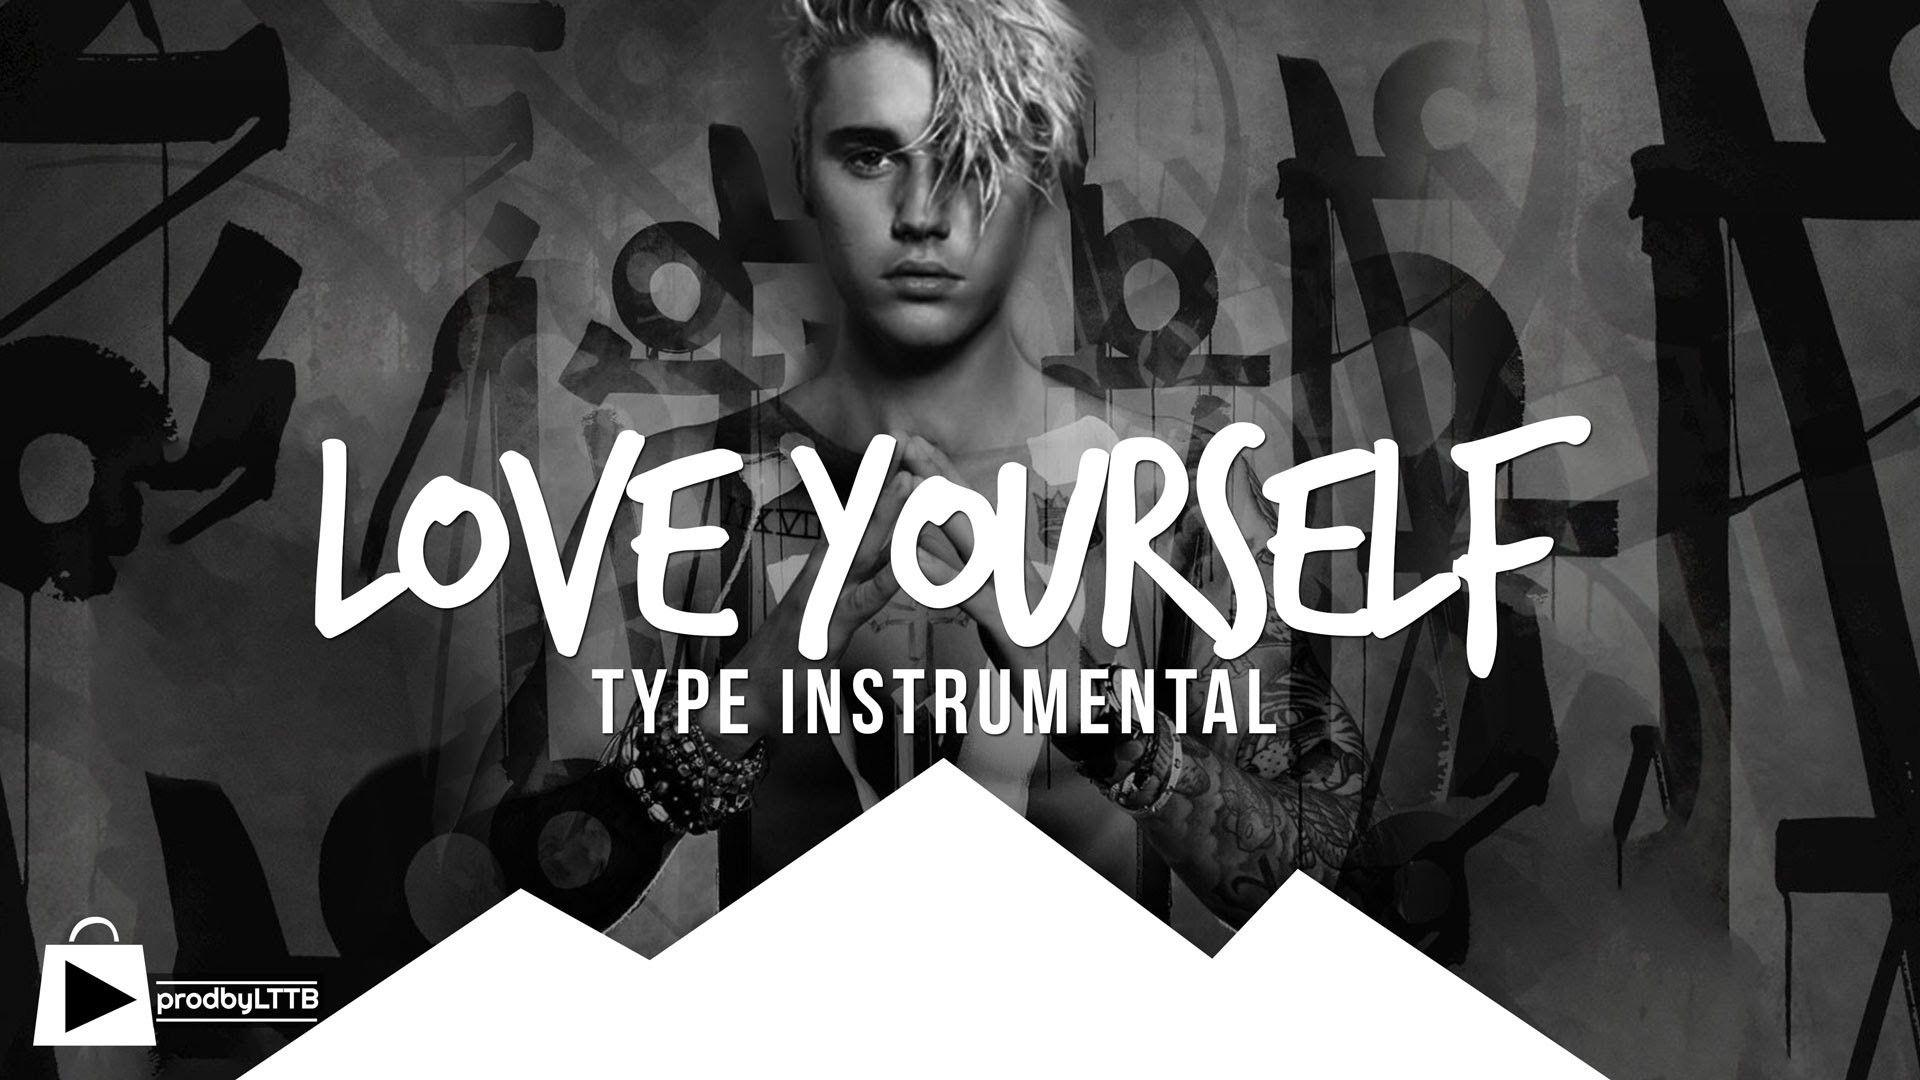 Love Yourself Justin Bieber Wallpaper : Justin Bieber 2018 Wallpapers - Wallpaper cave